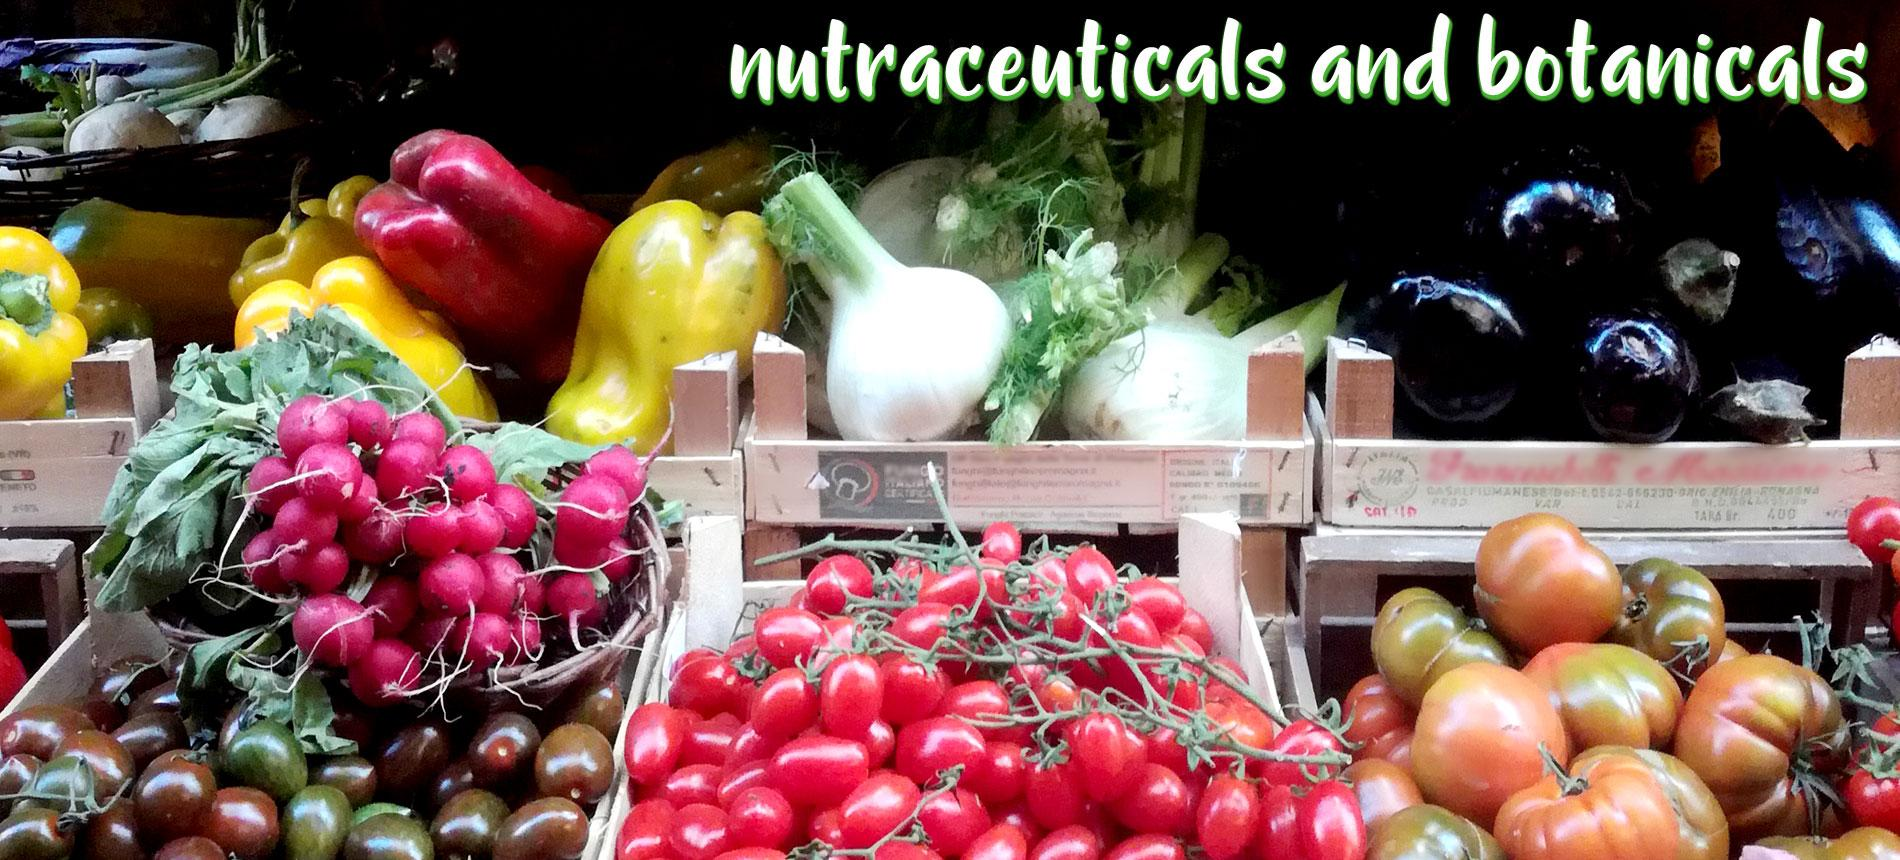 NUTRACEUTICALS AND BOTANICALS